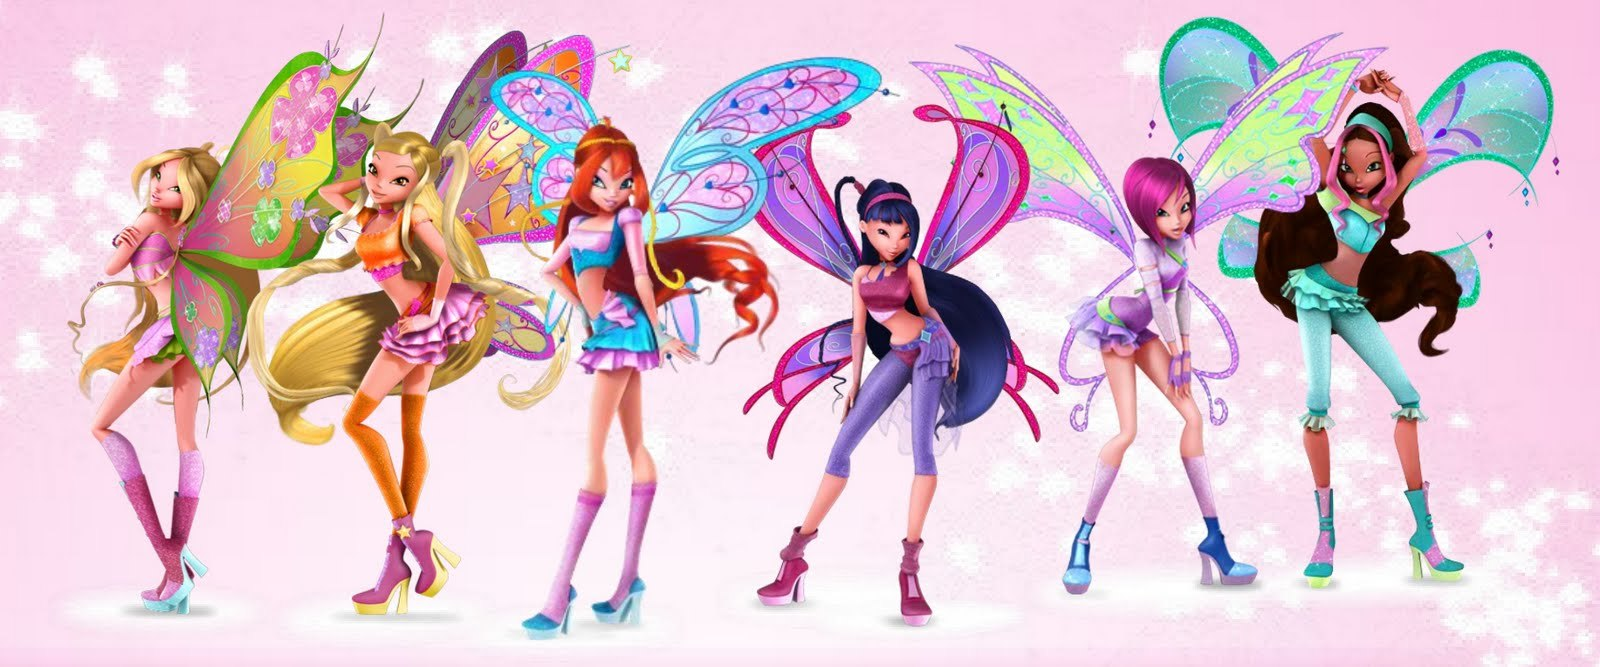 Dress up winx club - Gallery Images And Information Winx Club Enchantix 3d